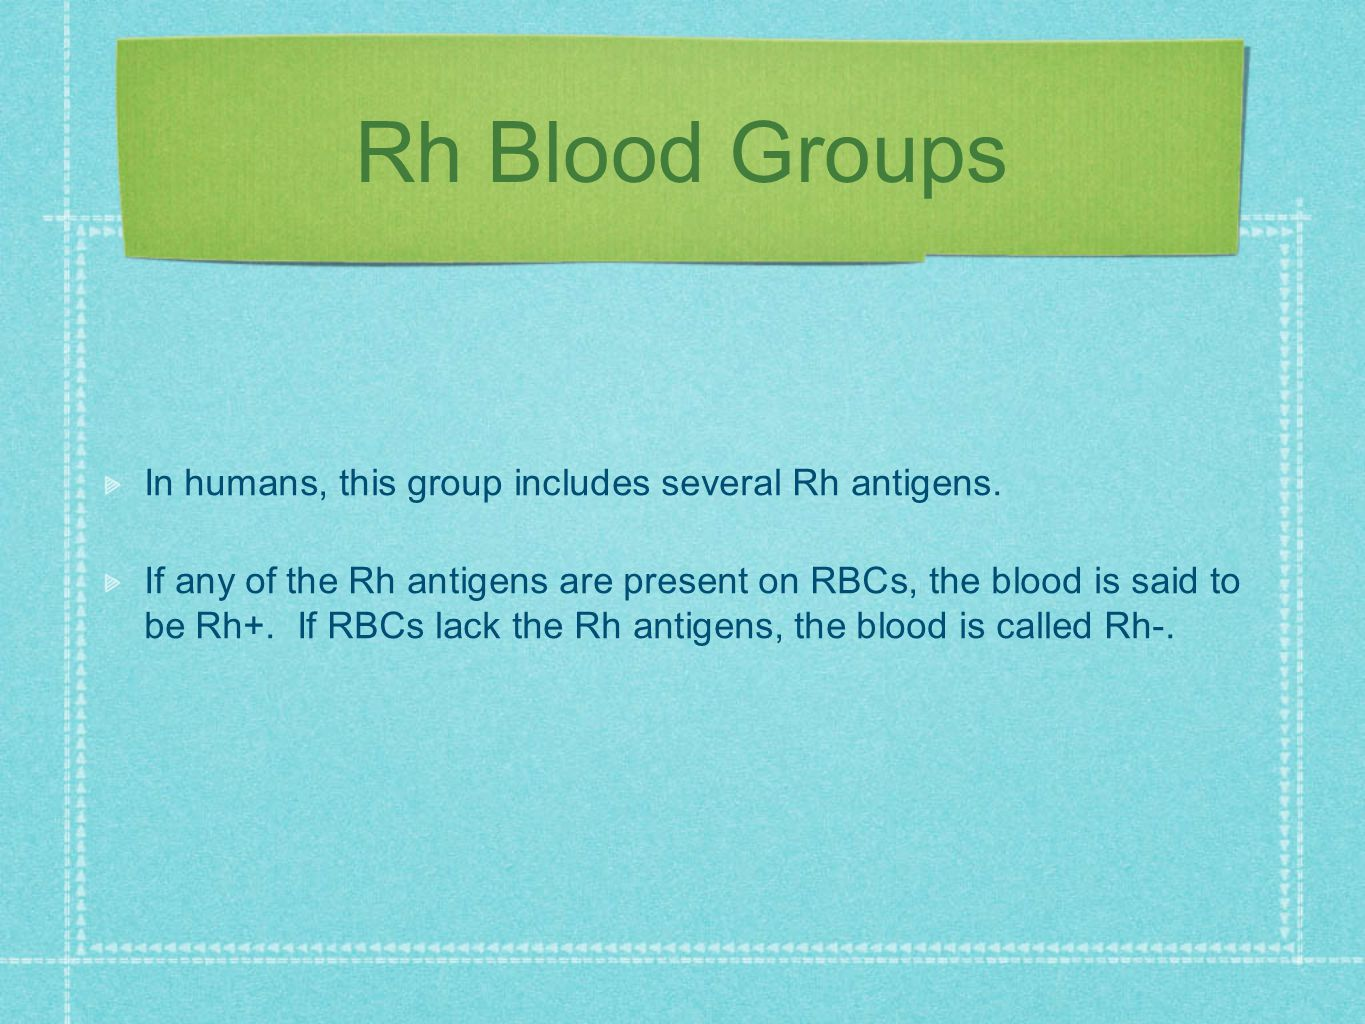 Rh Blood Groups In humans, this group includes several Rh antigens.